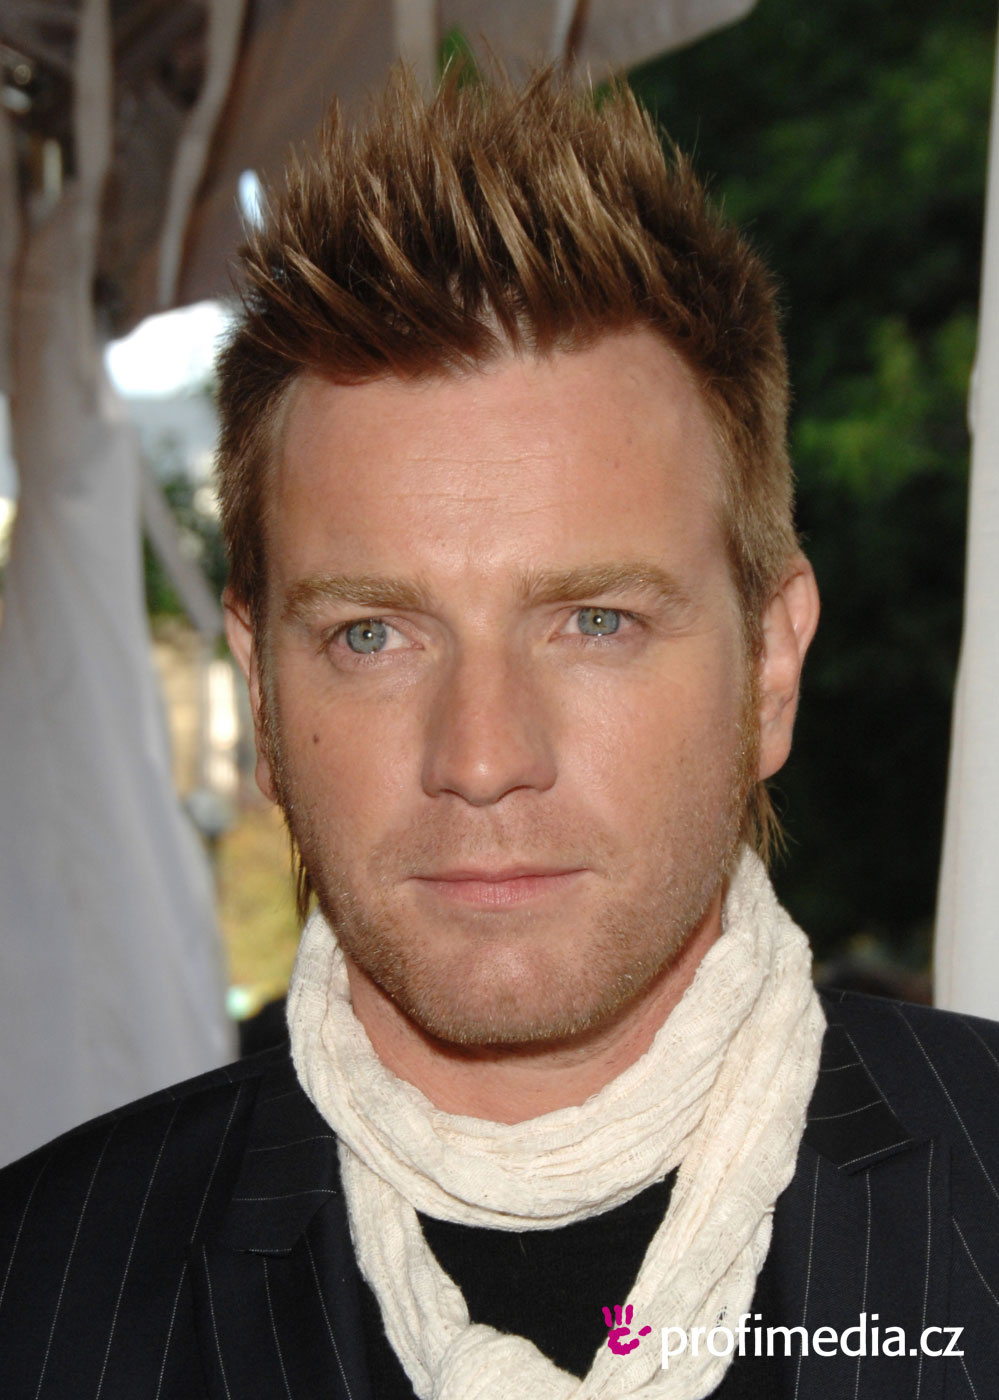 ewan mcgregor photoshootewan mcgregor fargo, ewan mcgregor instagram, ewan mcgregor 2016, ewan mcgregor star wars, ewan mcgregor gif, ewan mcgregor 2017, ewan mcgregor young, ewan mcgregor come what may, ewan mcgregor height, ewan mcgregor photoshoot, ewan mcgregor family, ewan mcgregor moulin rouge, ewan mcgregor фильмография, ewan mcgregor your song, ewan mcgregor daughter, ewan mcgregor your song скачать, ewan mcgregor личная жизнь, ewan mcgregor vk, ewan mcgregor на игле, ewan mcgregor movies